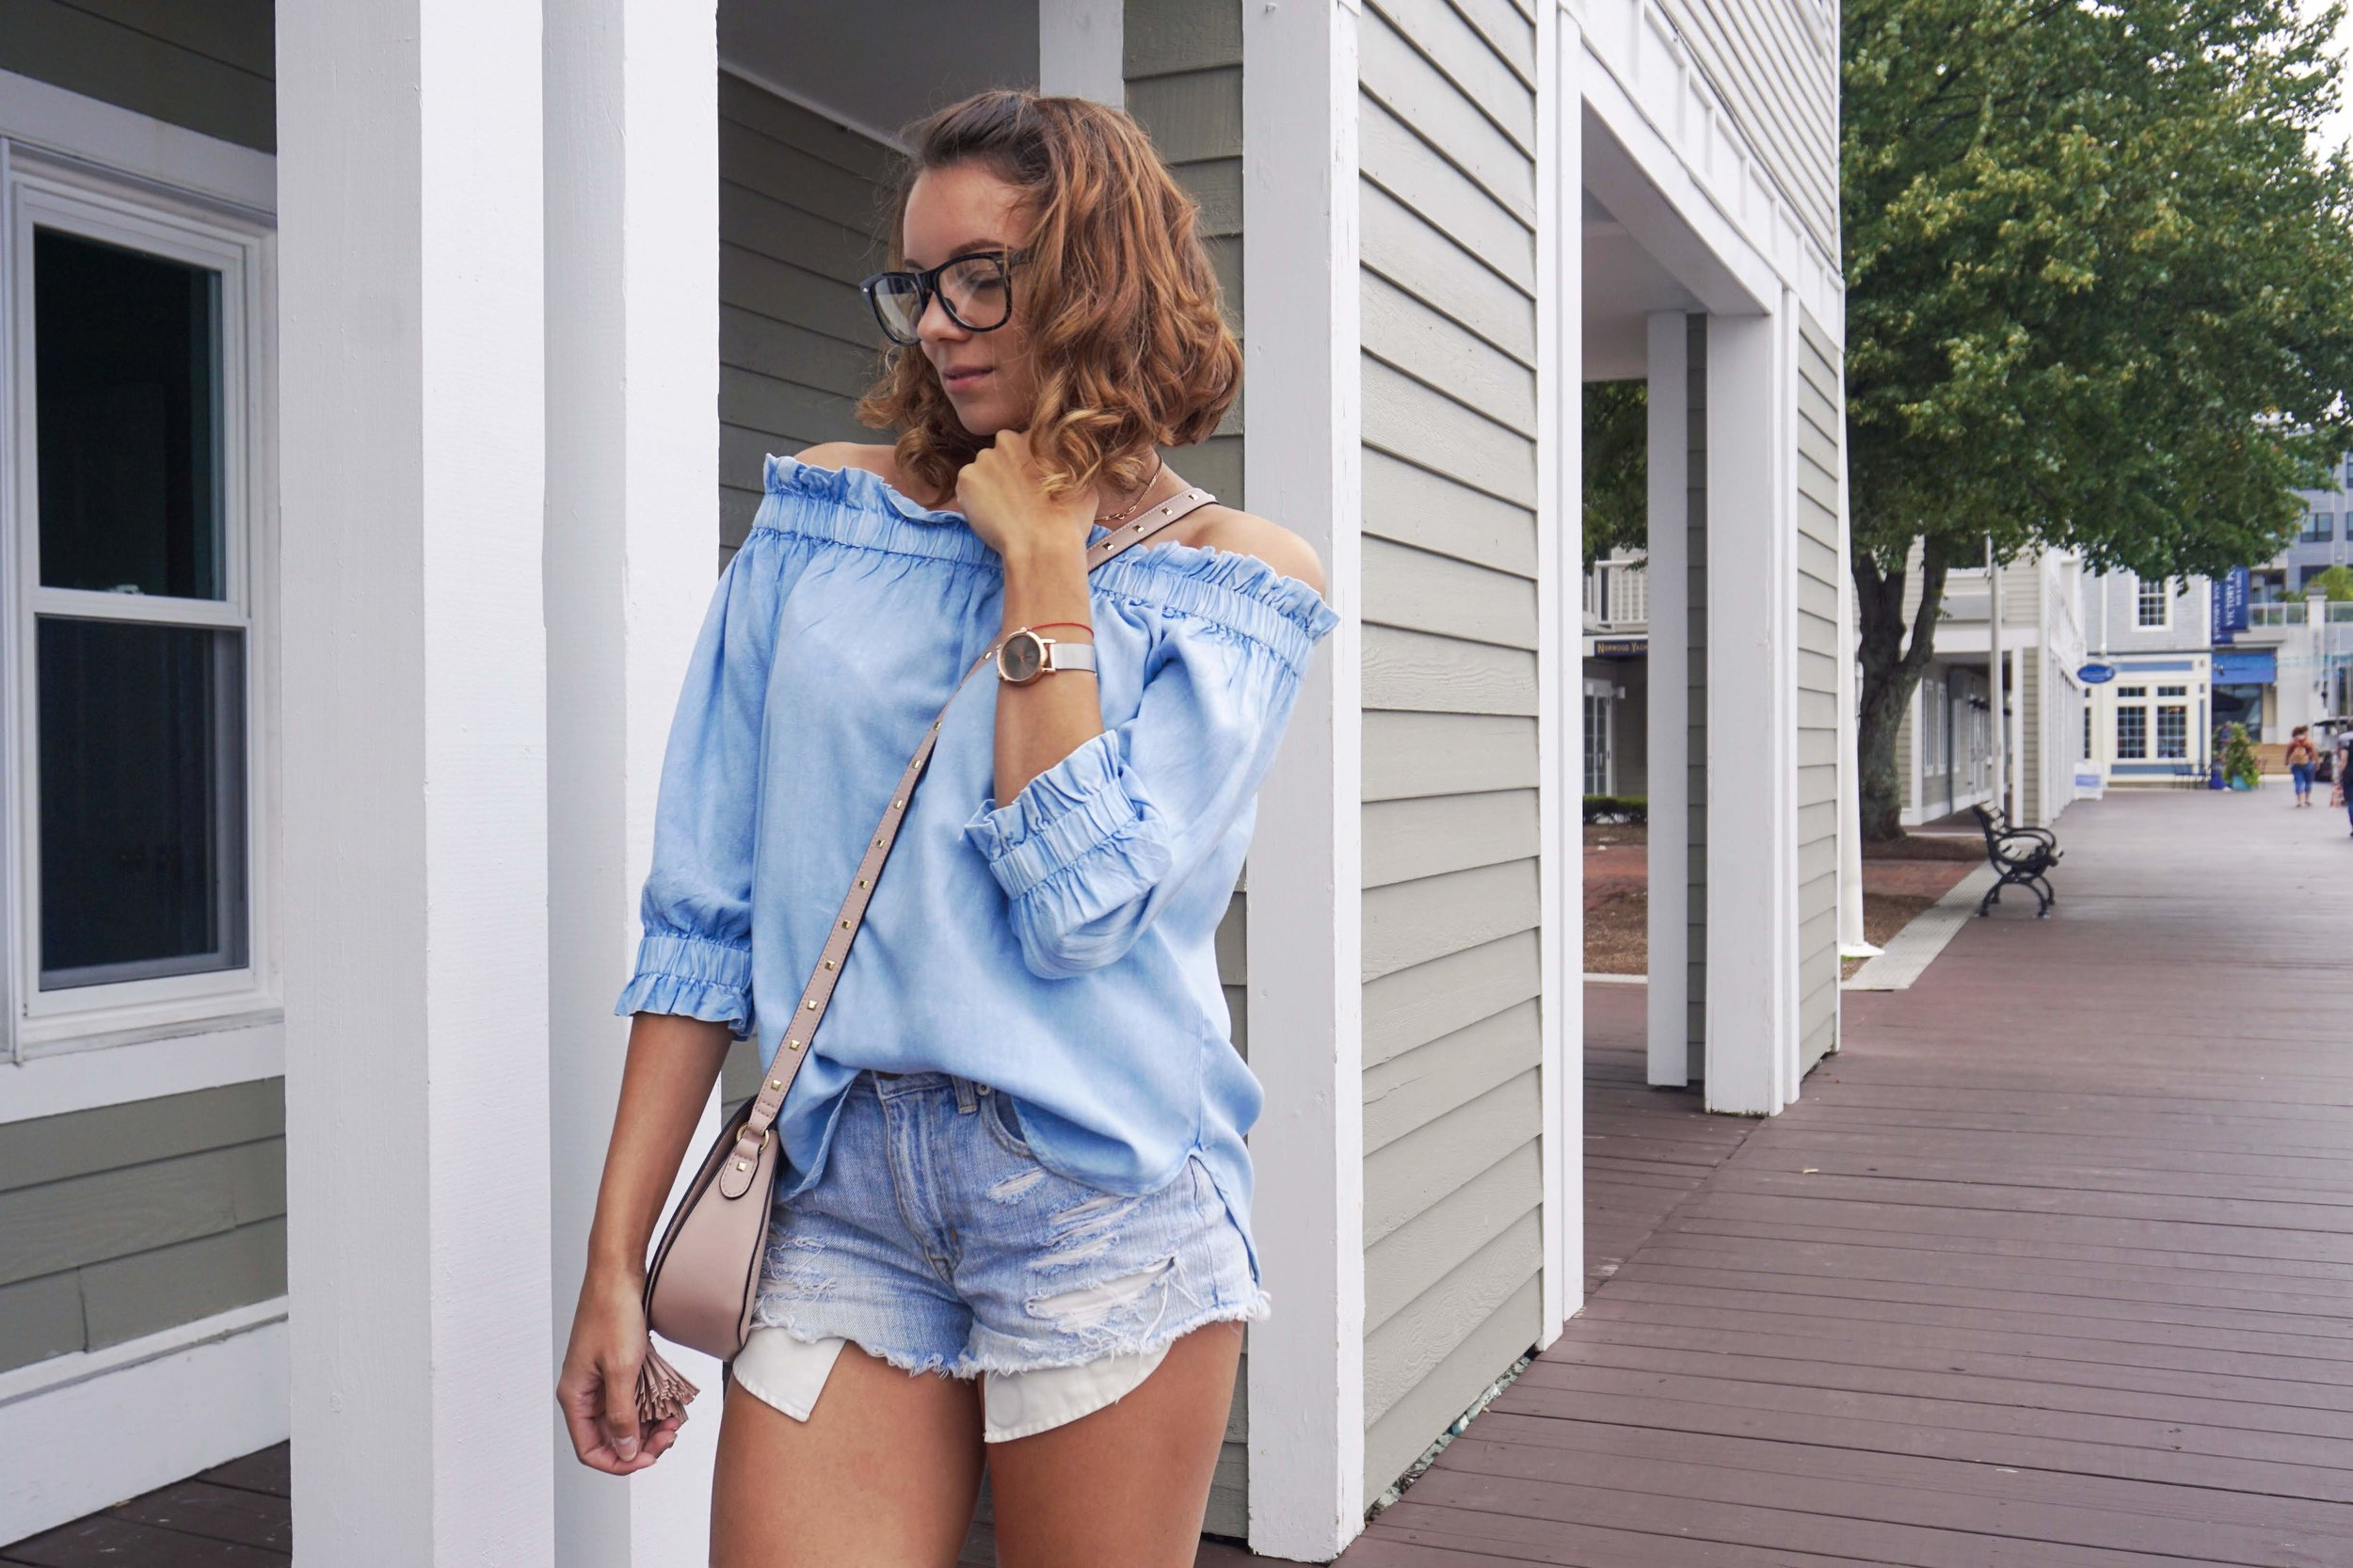 A fashion blogger posing near houses, wearing an all denim outfit.